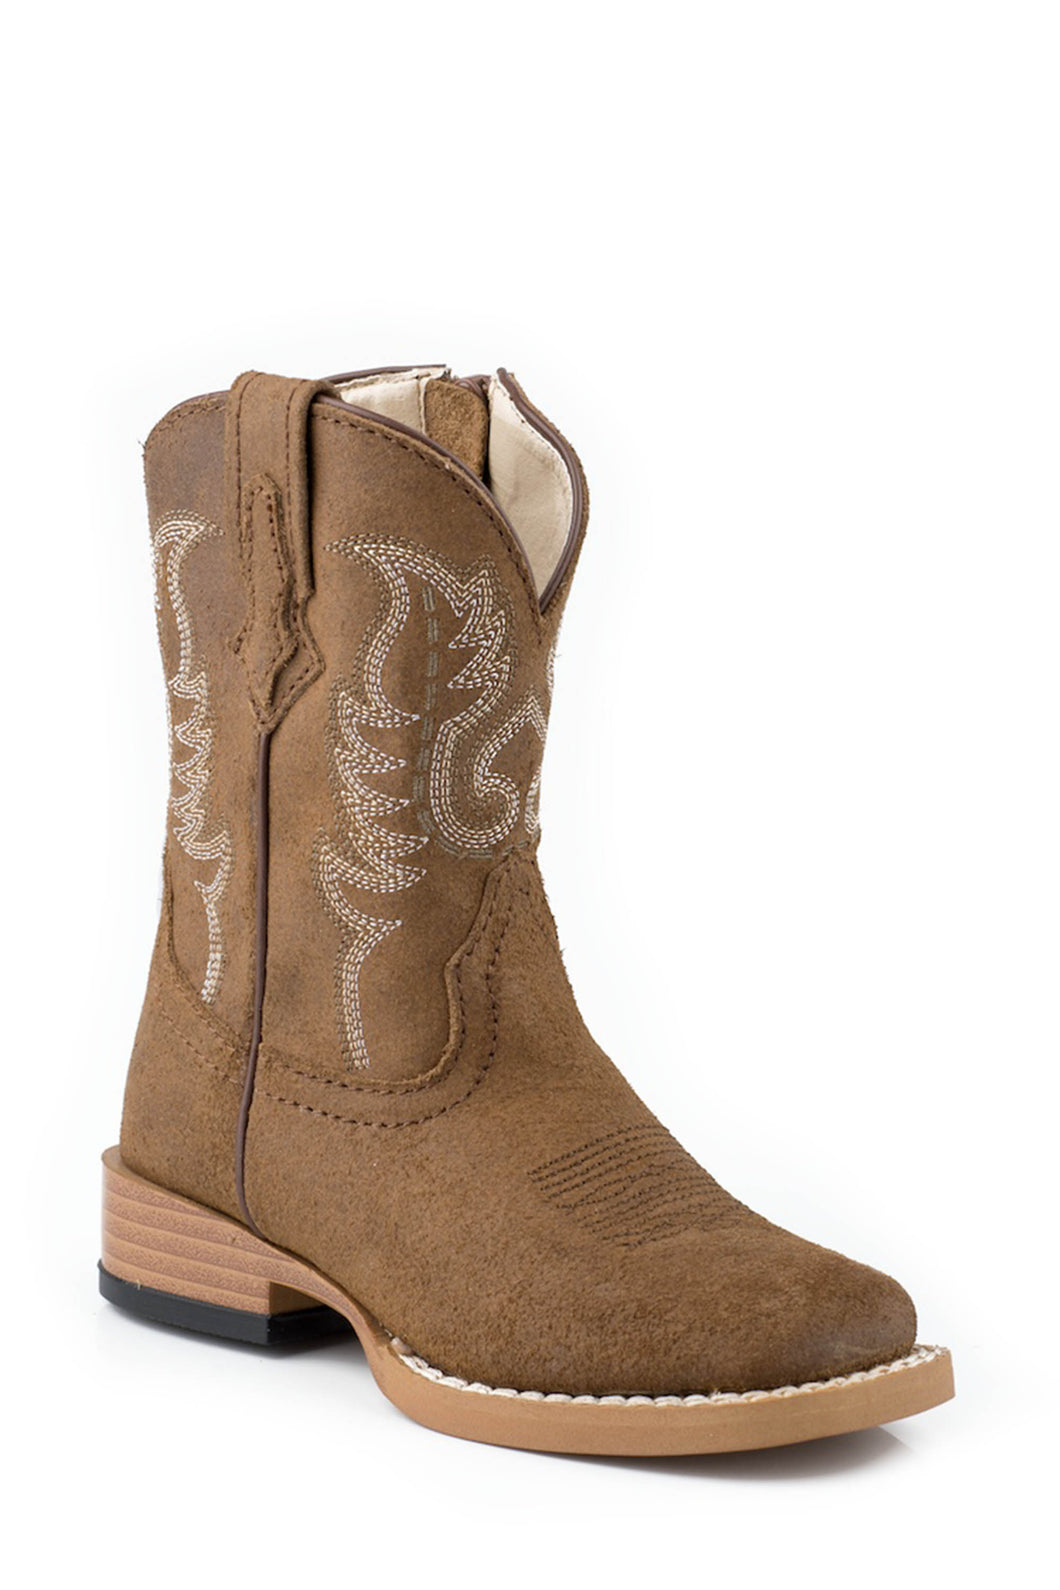 Dalton Boot Toddlers Boots Square Toe Traditional Western Stitch